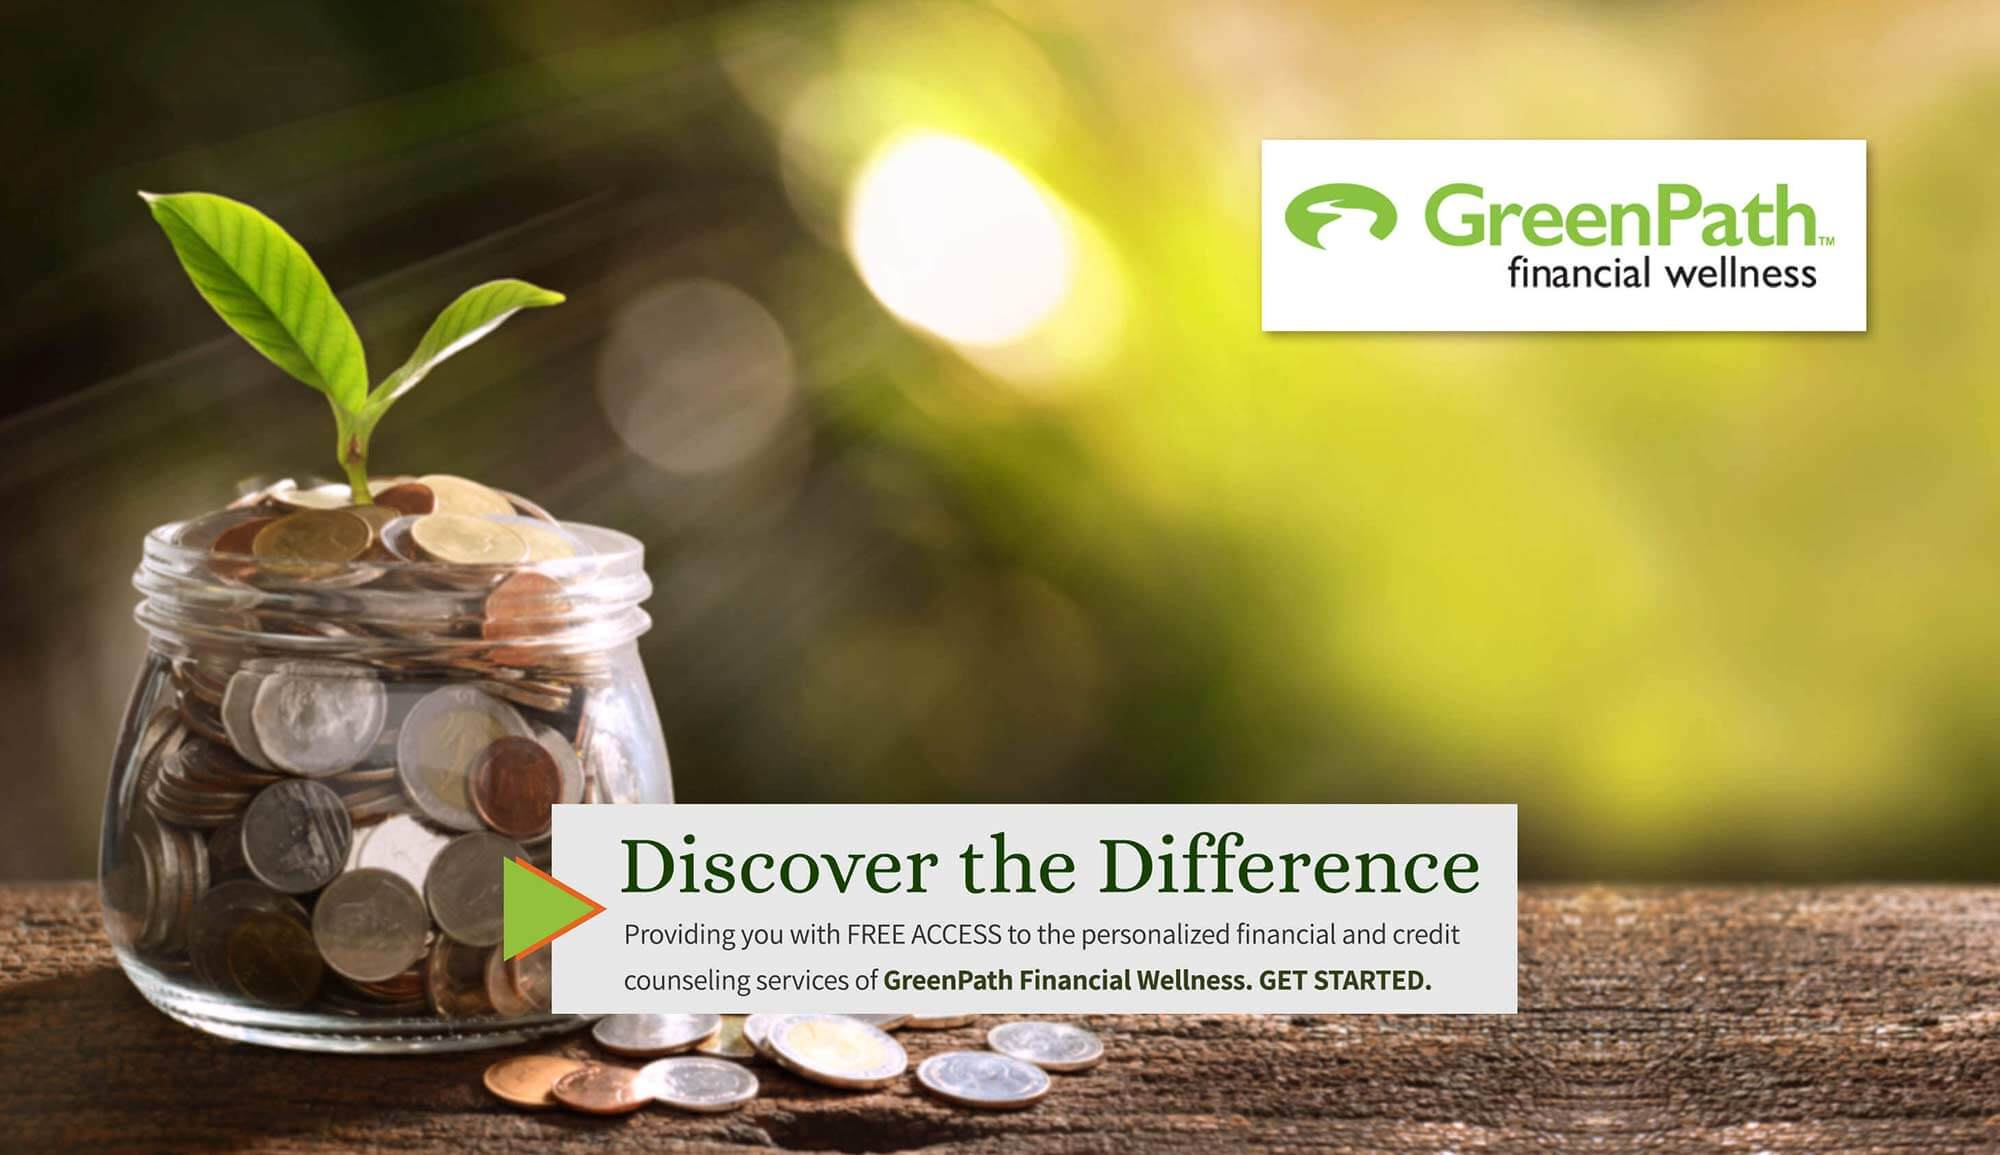 Greenpath Financial Wellness. Discover the Difference. Providing you with free access to the personalized financial and credit counseling services of GeenPath Financial Wellness. Get Started